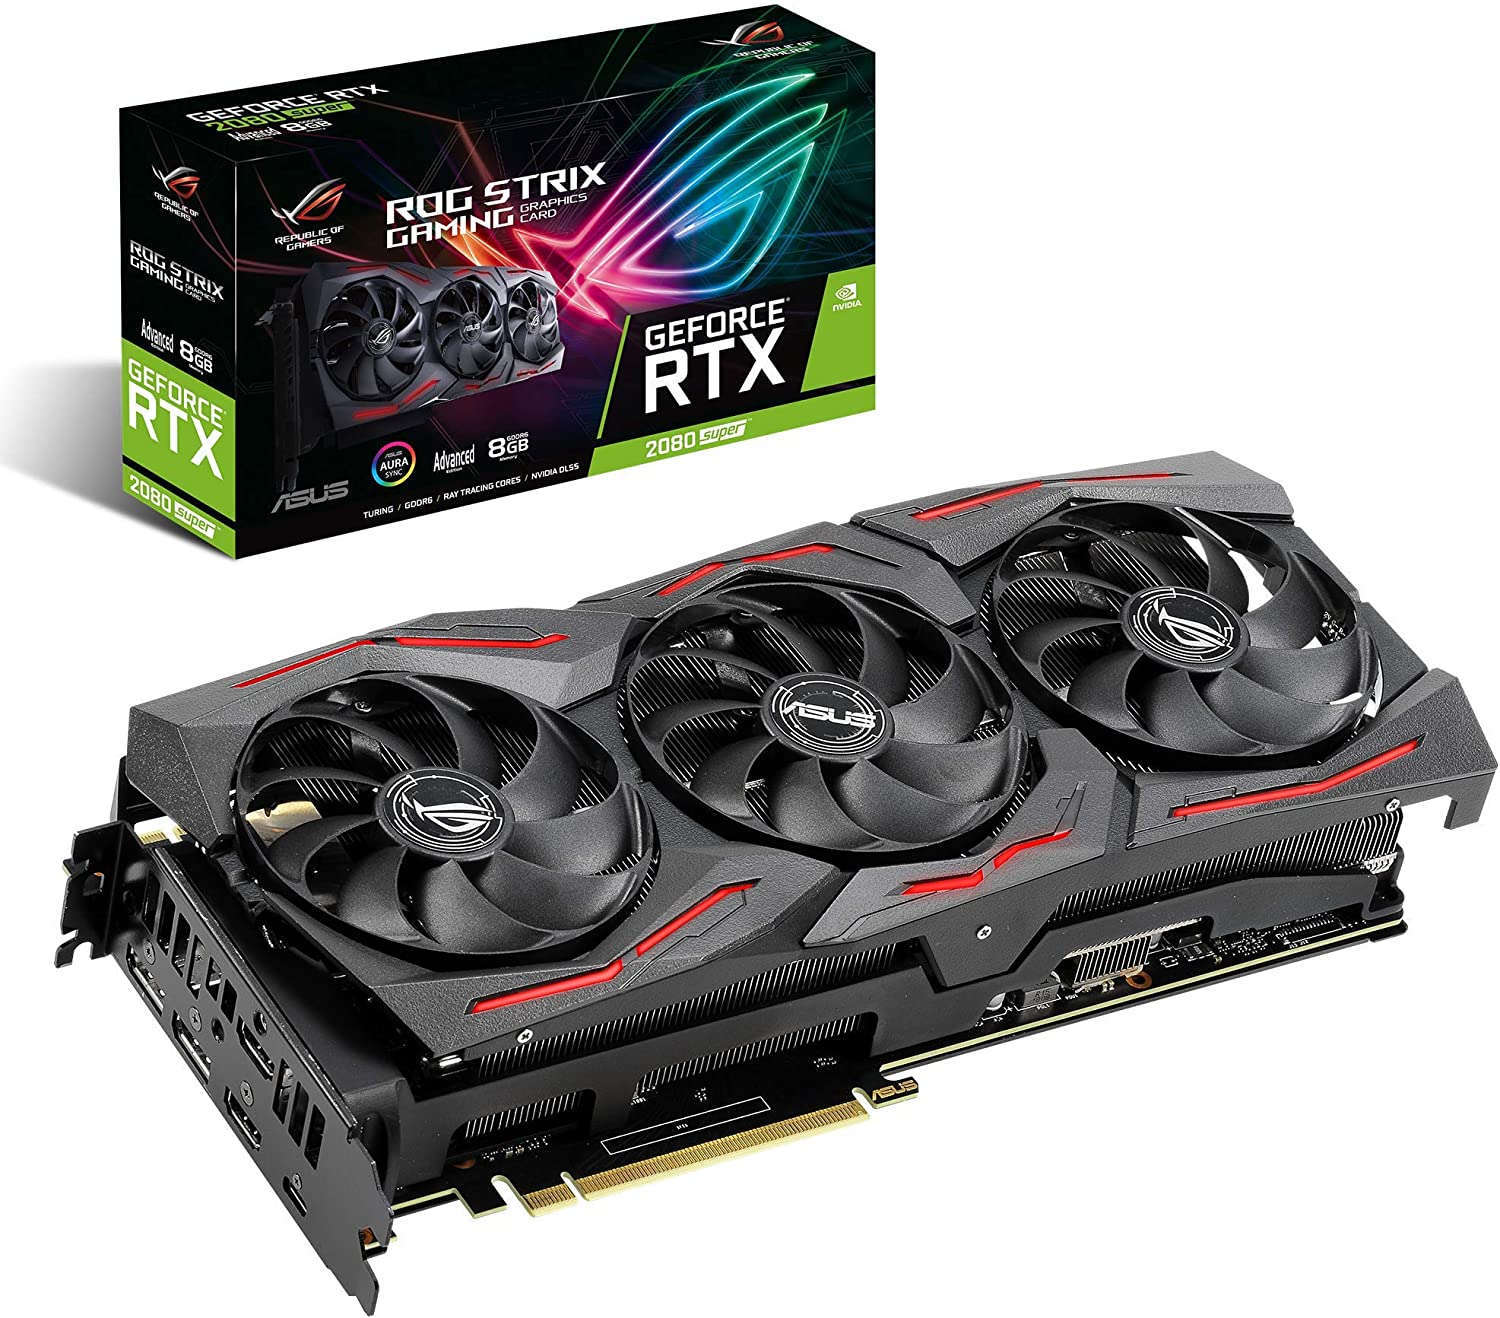 GeForce RTX 2080 Super Graphics Cards,GeForce RTX 2080, DigitalUpBeat - Your one step shop for all your  tech gifts and gadgets